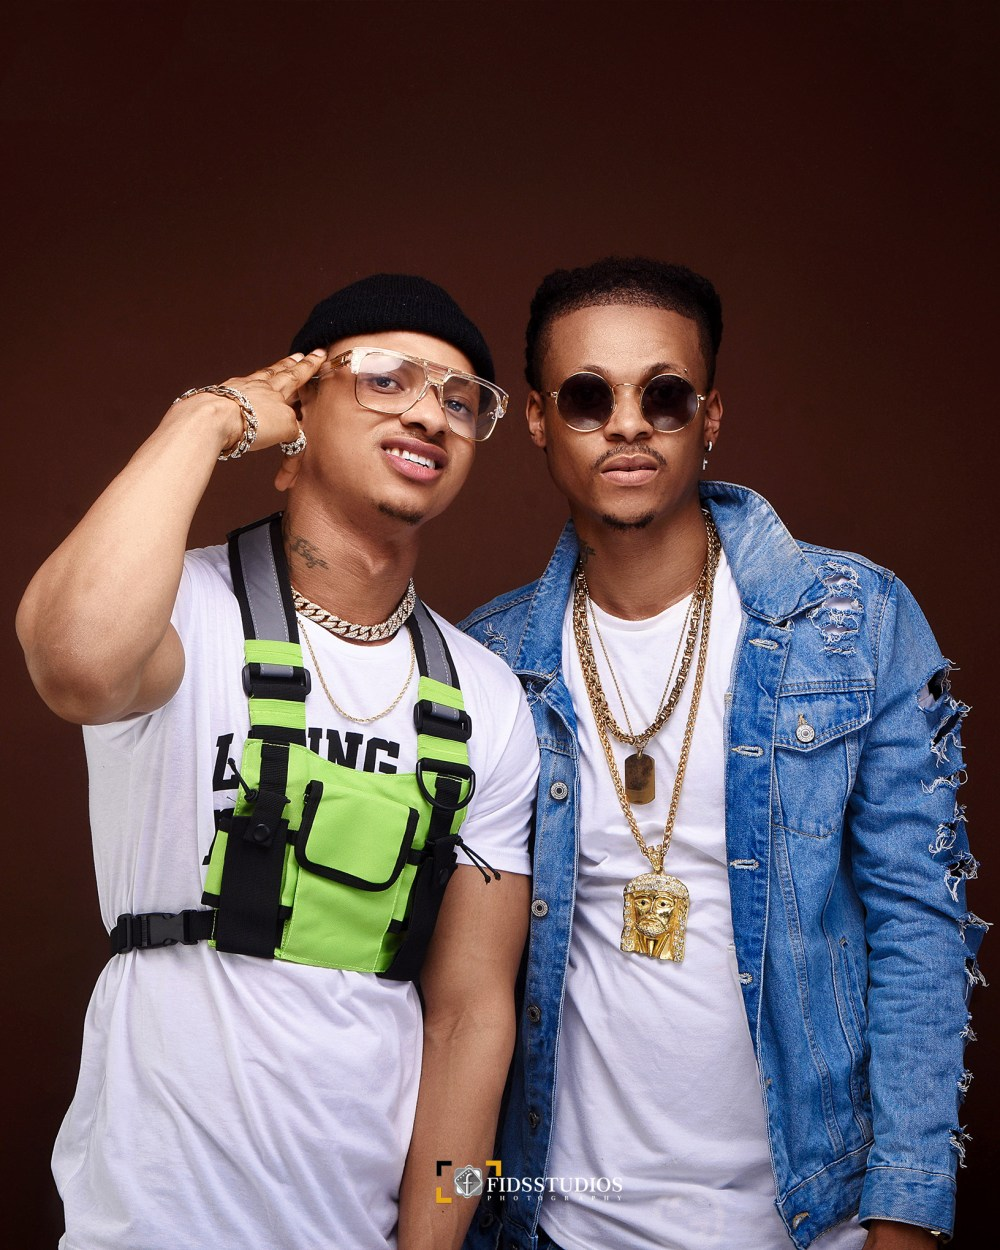 African duo The Savage Brothers dazzle in new stunning photos